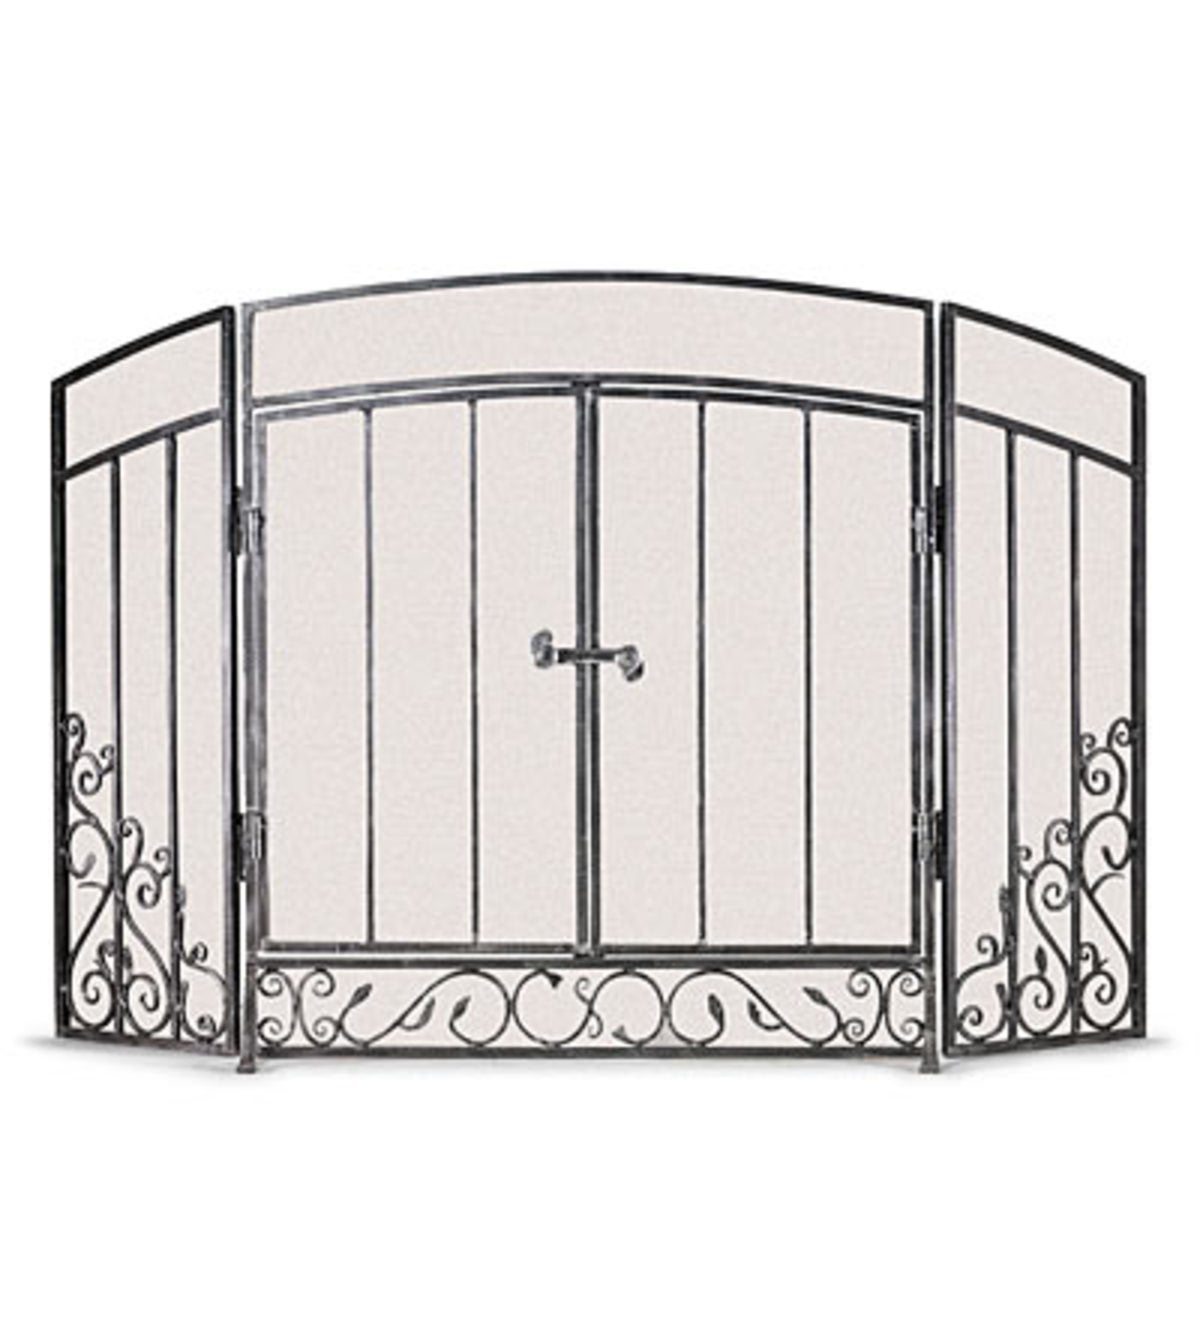 Pewter Renaissance Hearth Screen - Black